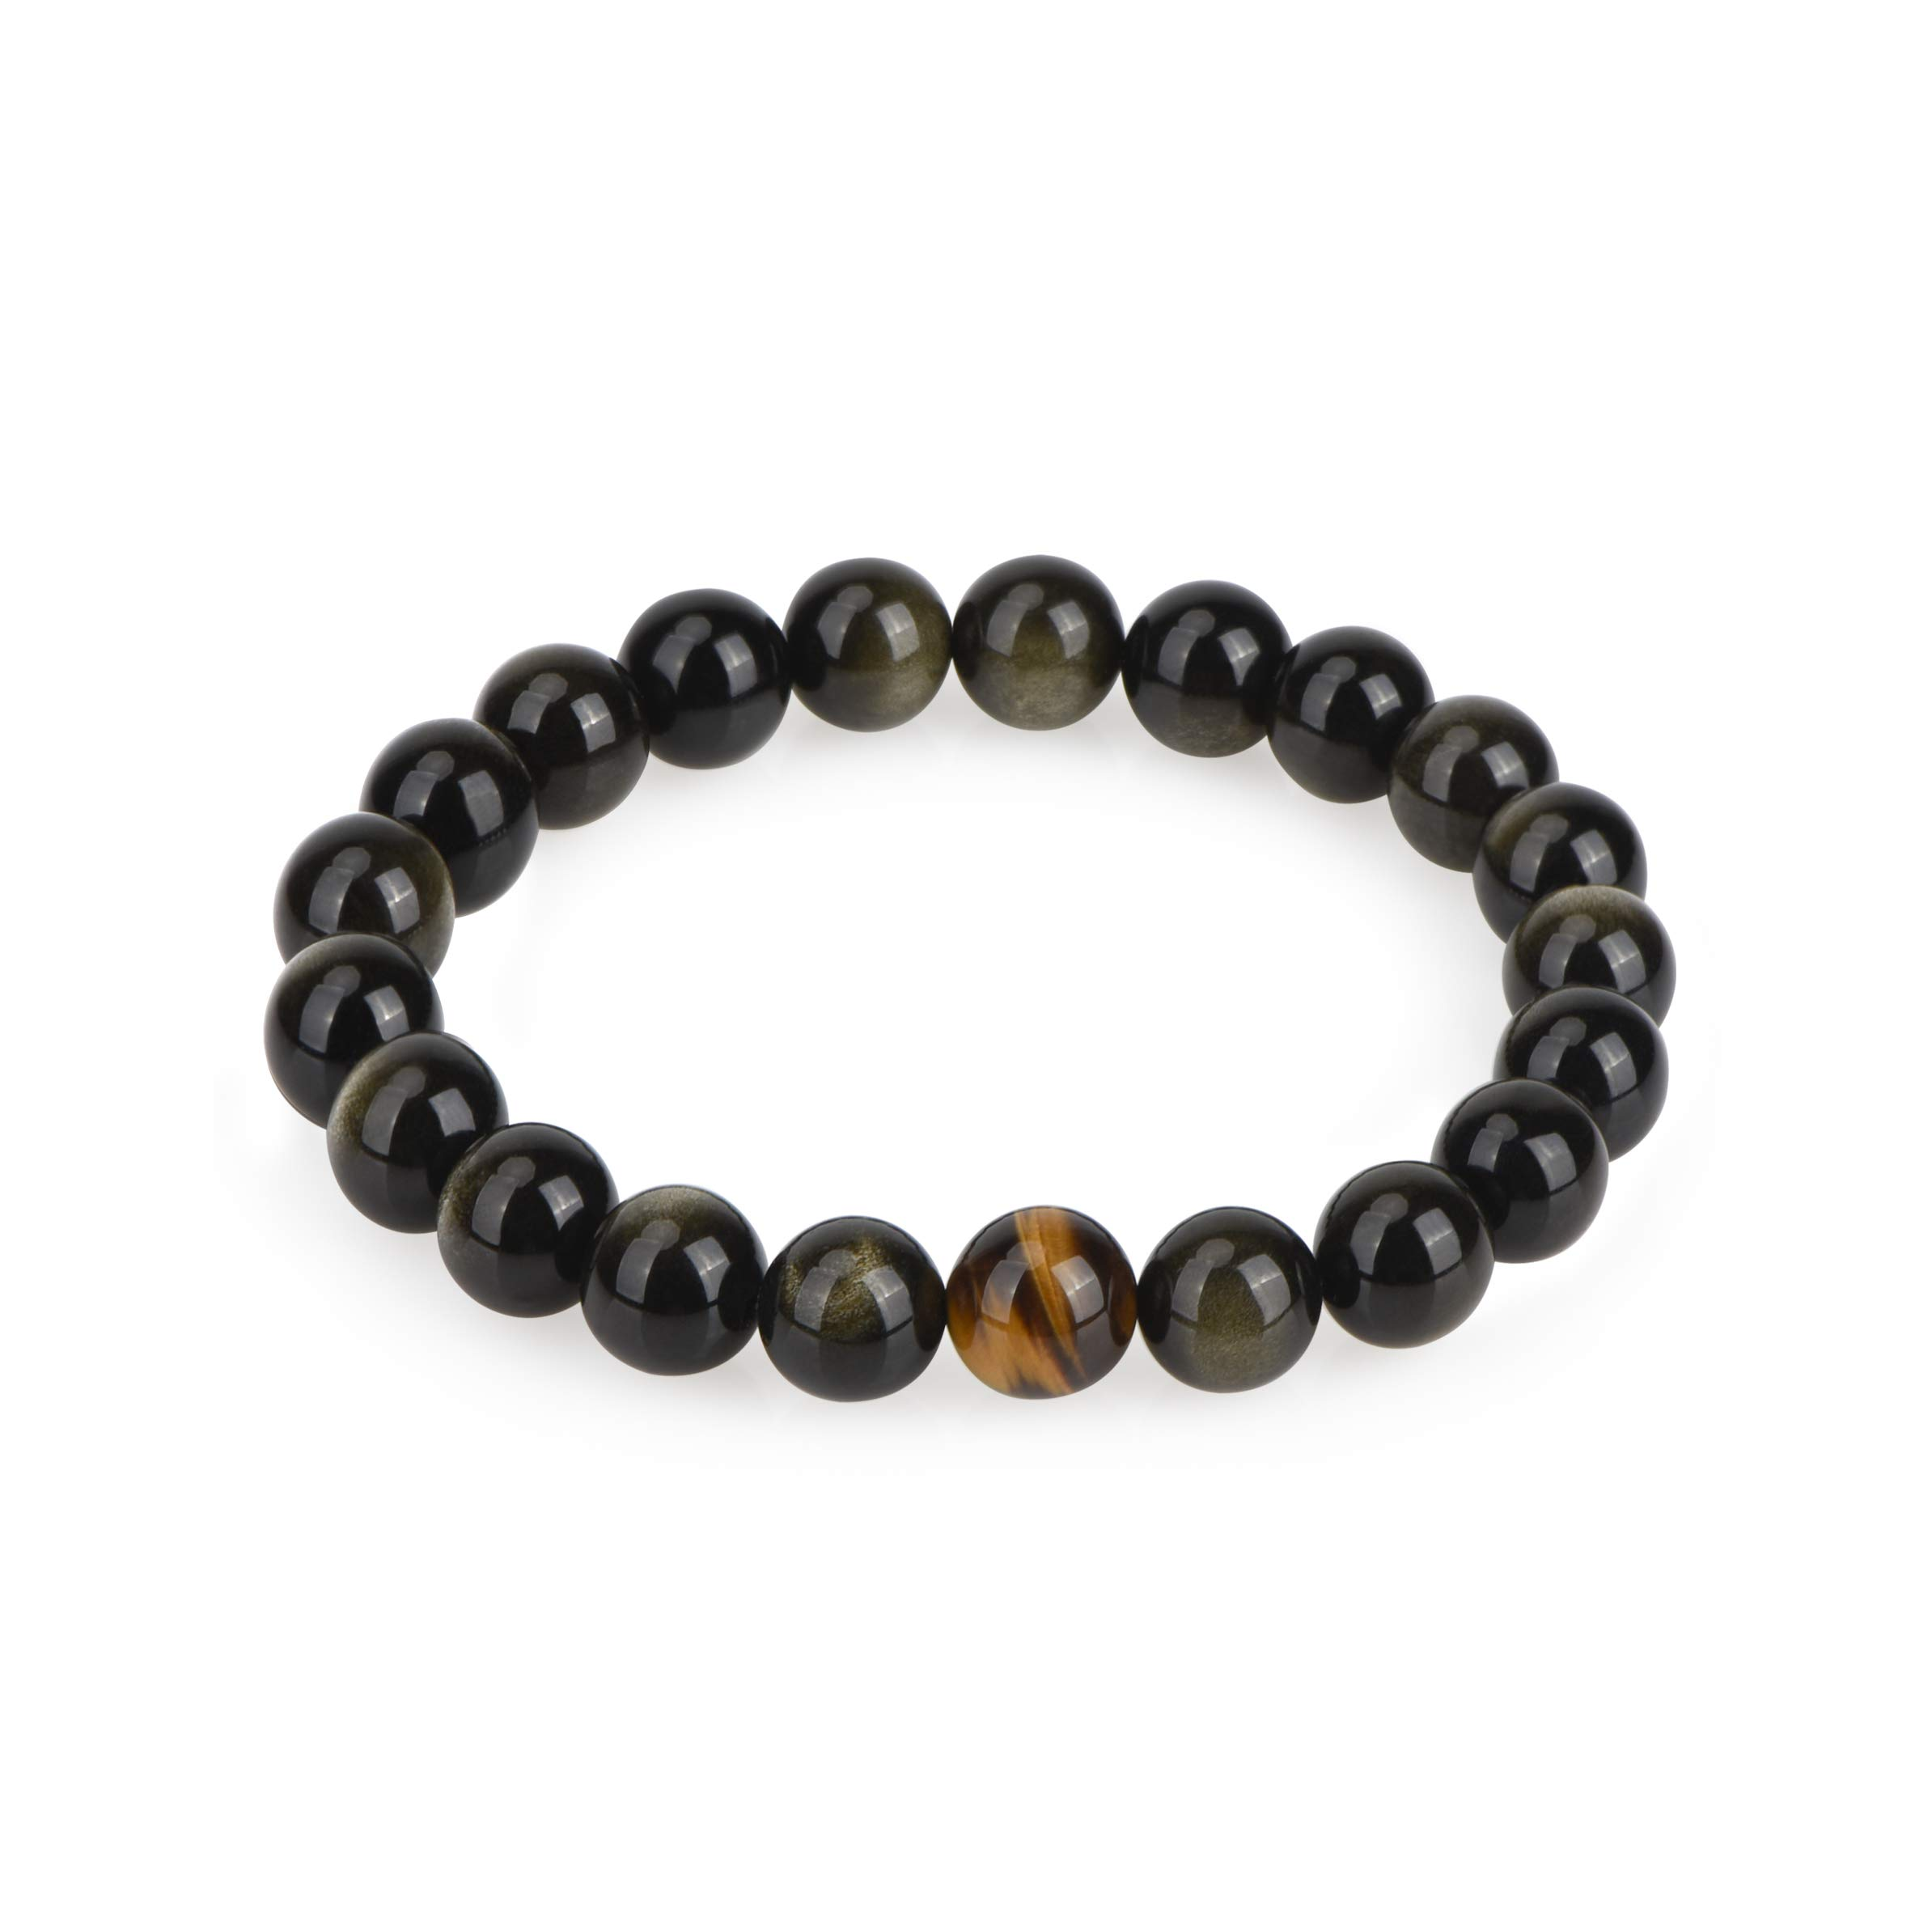 COLORFEY Mens Tiger Eye Golden Sheen Obsidian Energy Healing Natural Gemstone Bracelet for Meditation